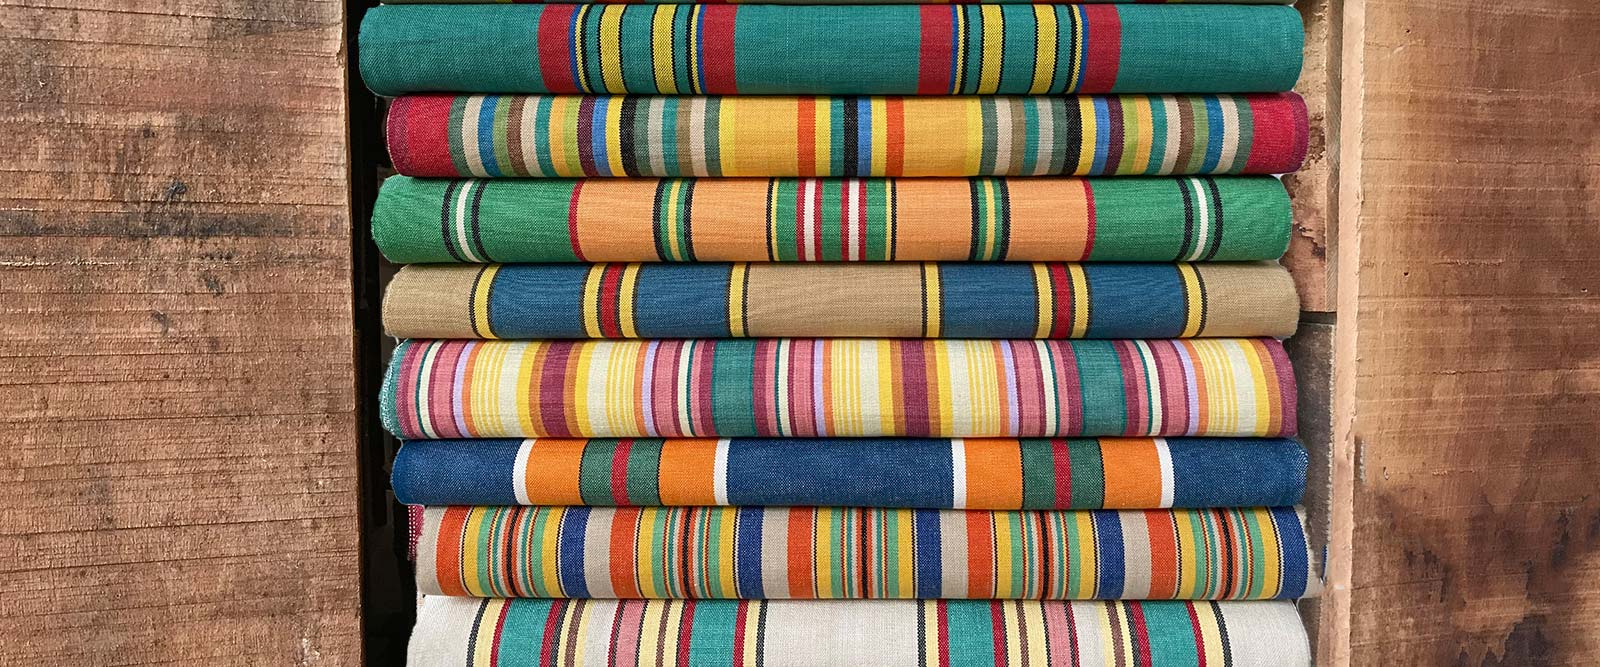 Deckchair Canvas Vintage Archive Striped Fabrics | Vintage Deckchair Fabric